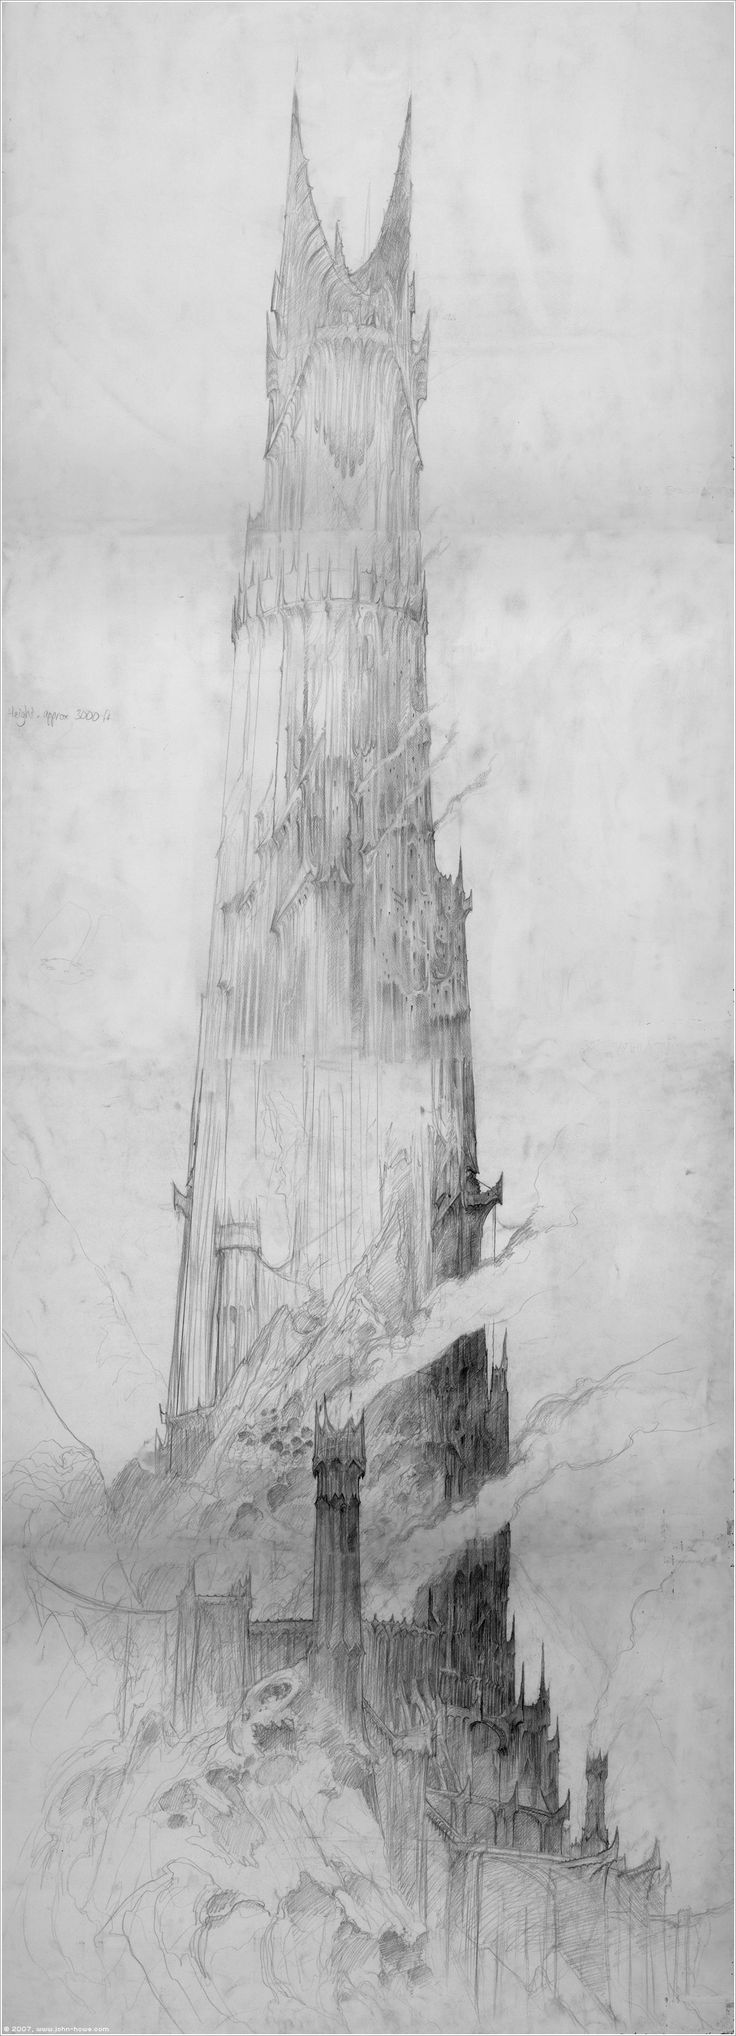 Lord Of The Rings Concept Art John Howe Barad dr